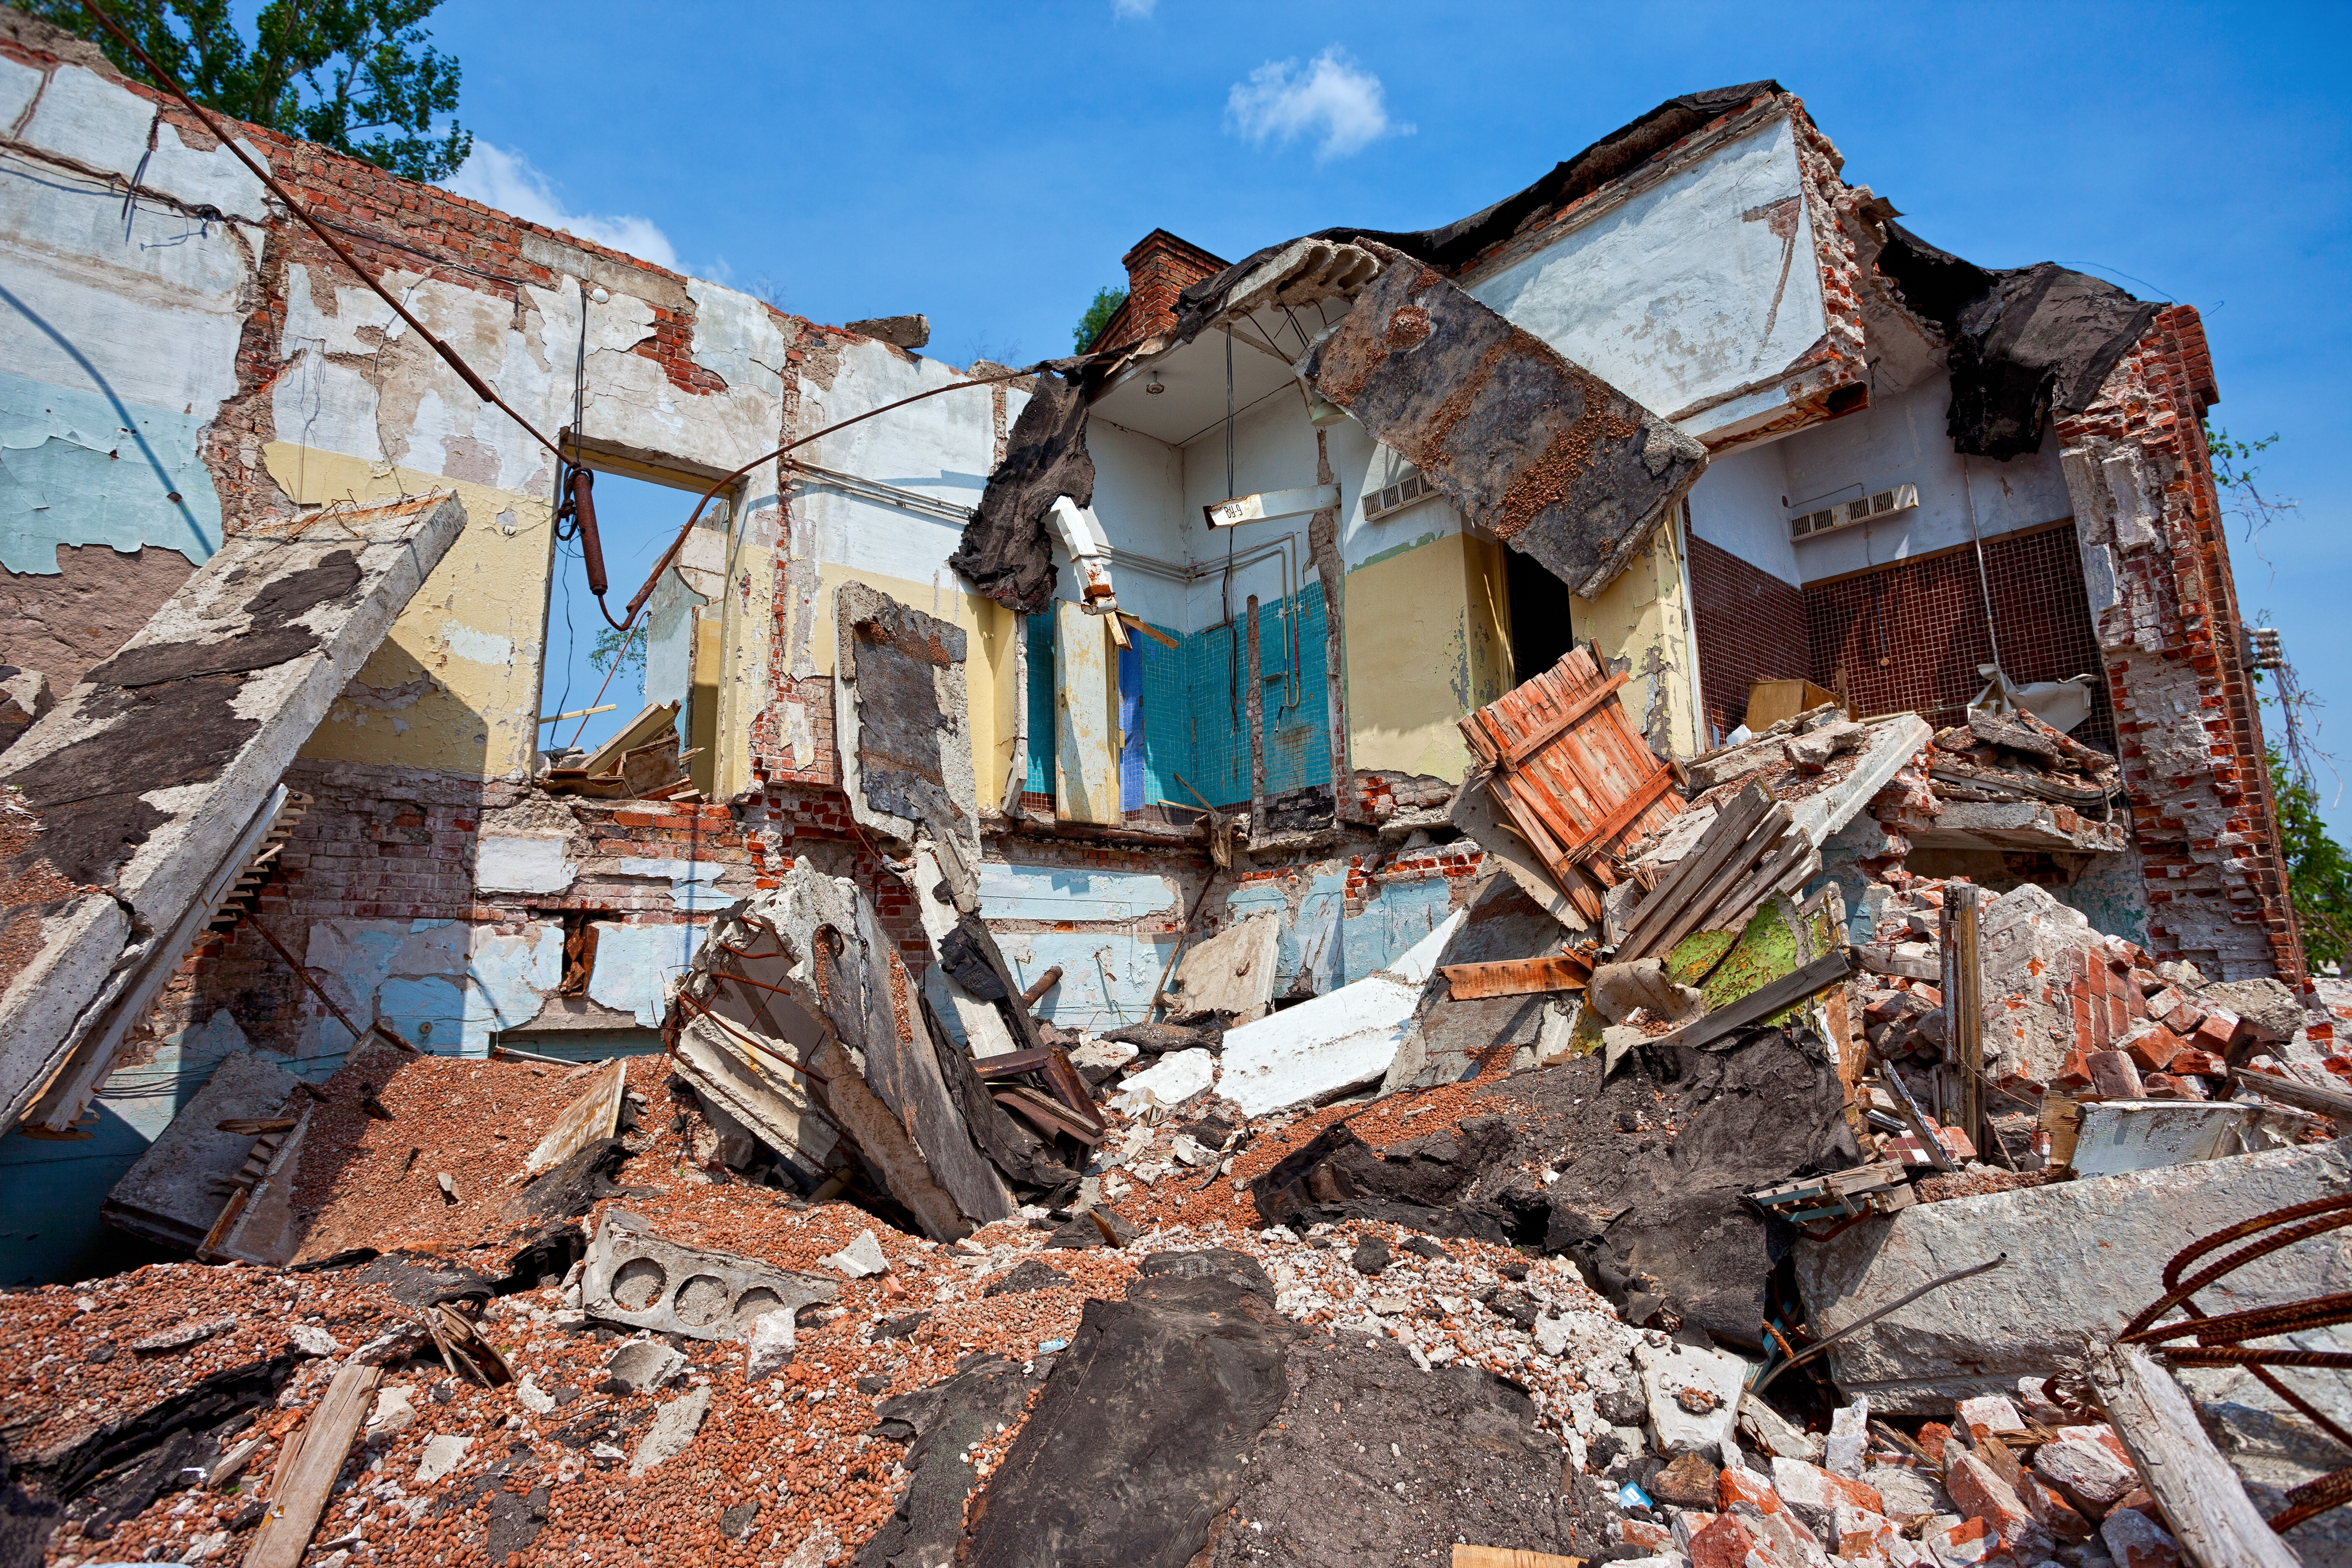 17570801 - destroyed building, can be used as demolition, earthquake, bomb, terrorist attack or natural disaster